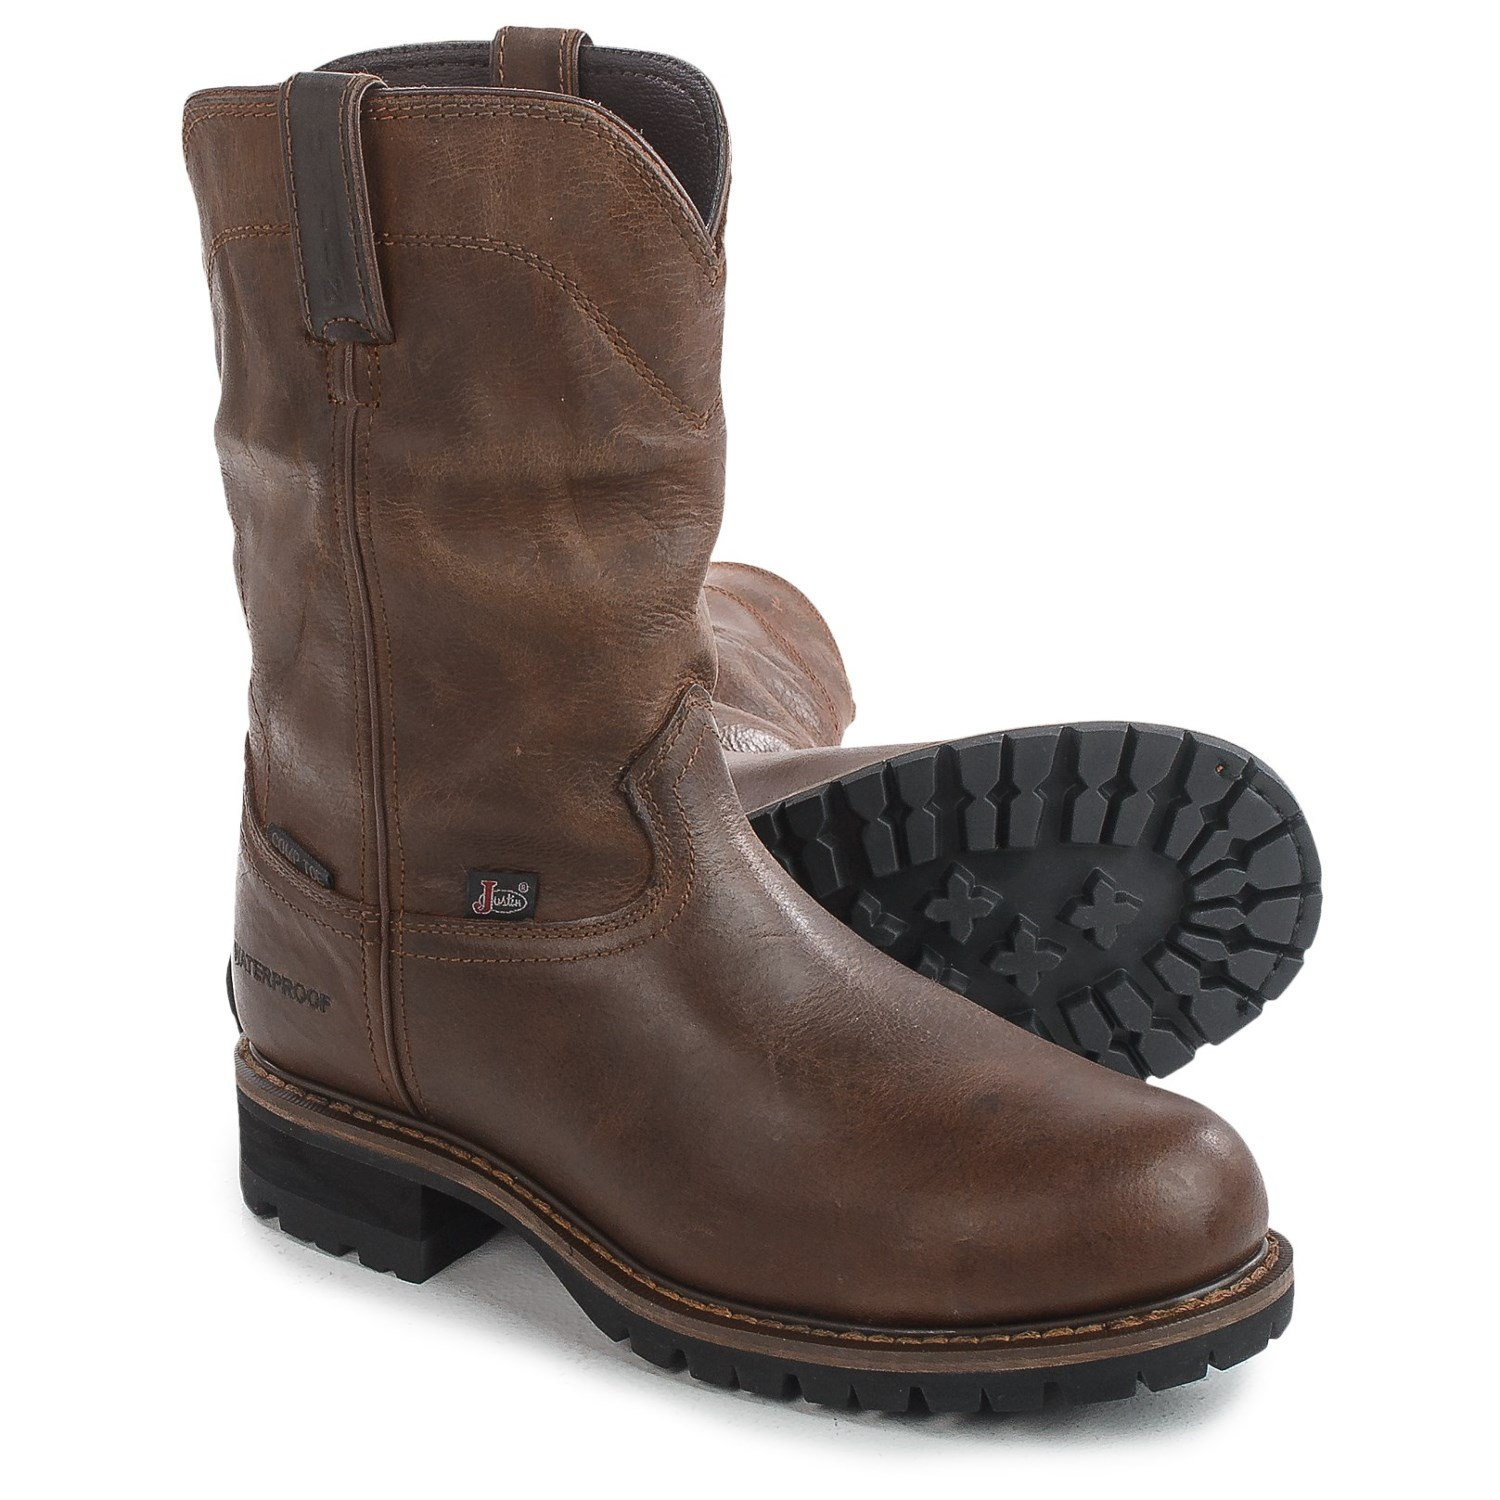 Justin Boots Original Work Boots (For Men) - Save 42%